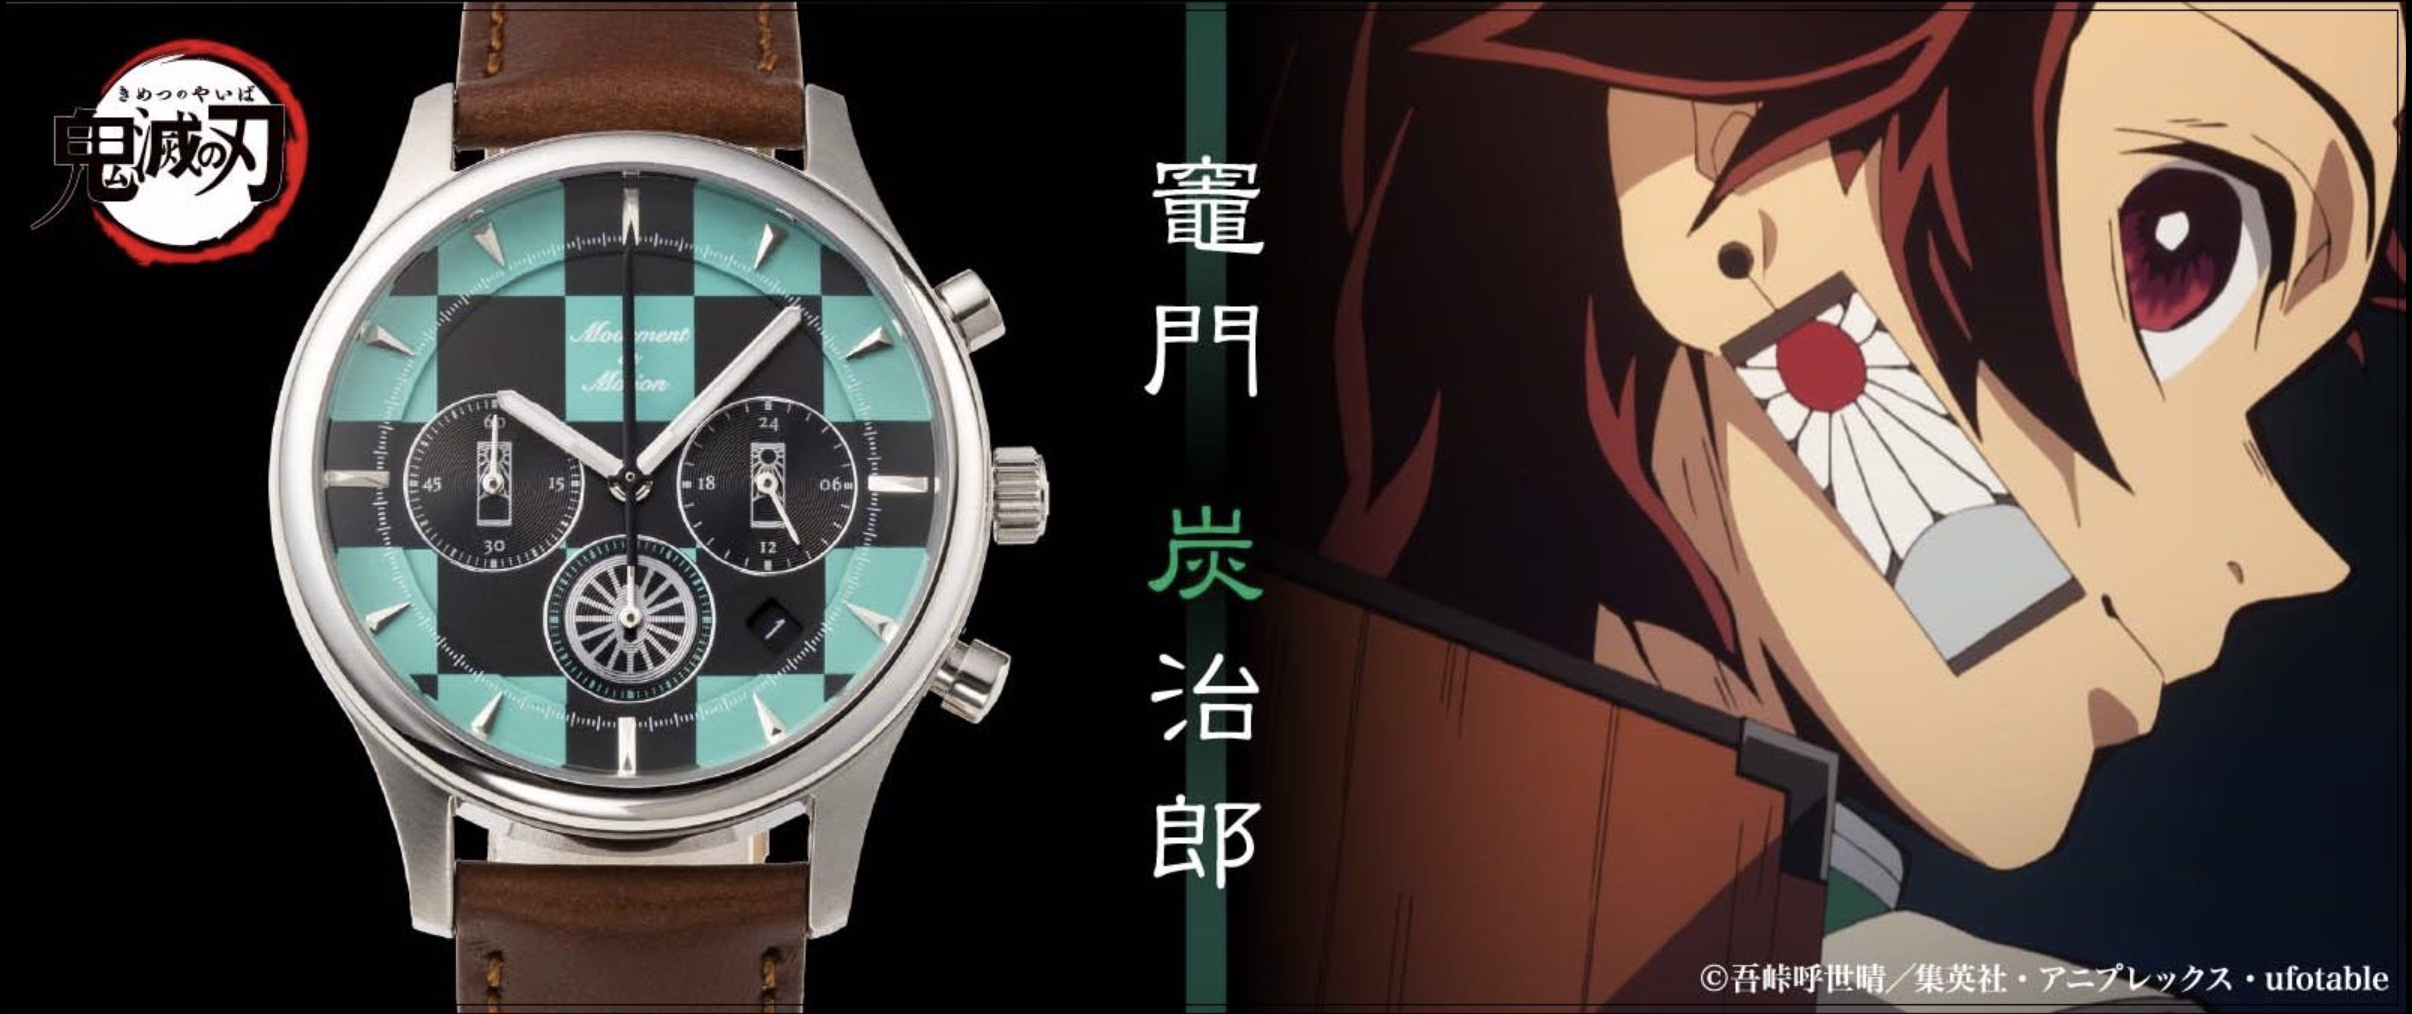 Tanjiro watch